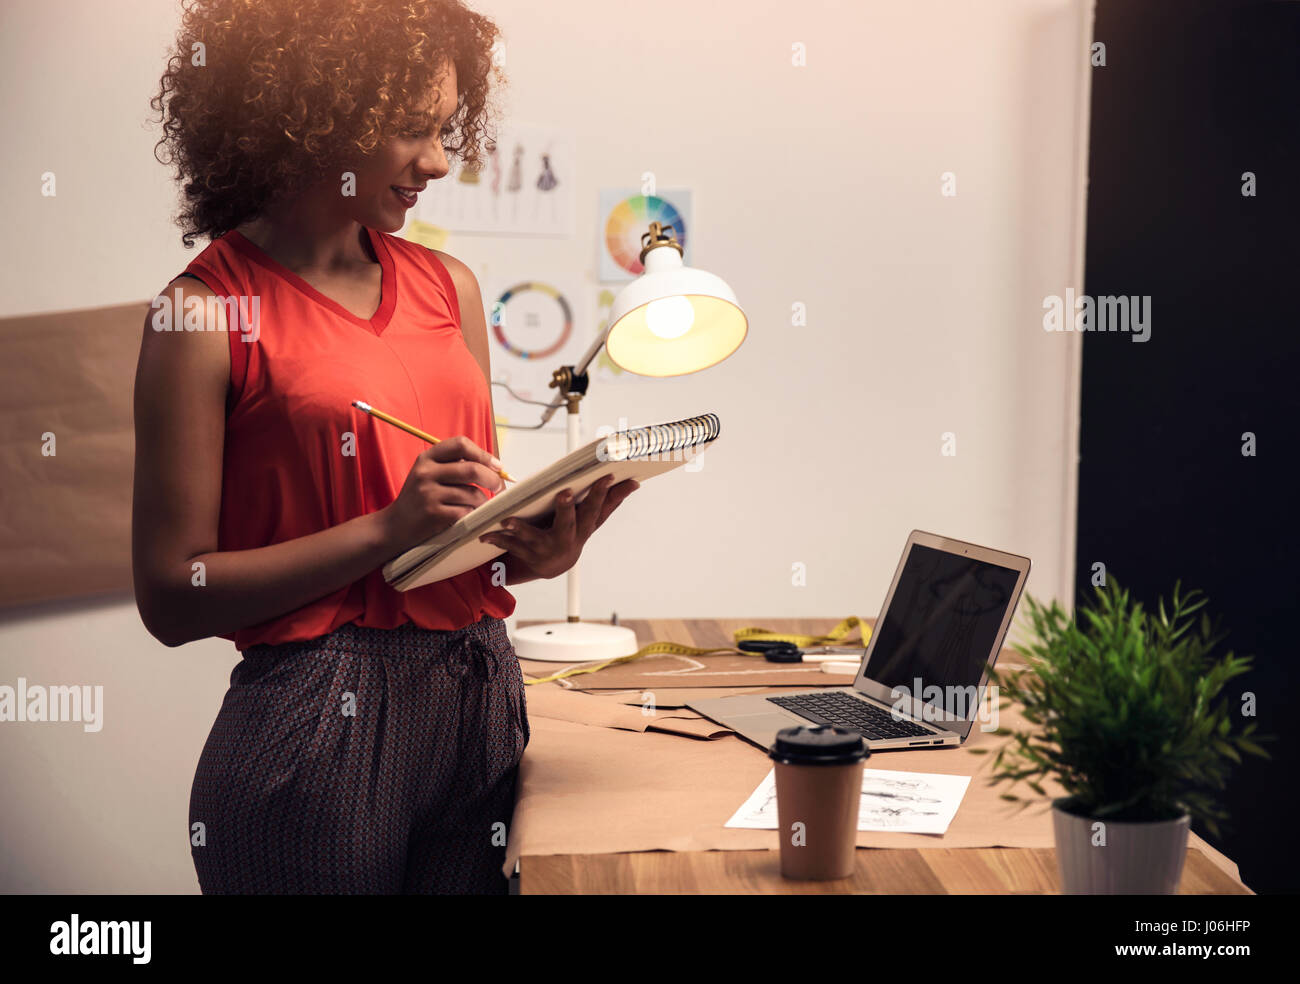 A young fashion designer working on her atelier - Stock Image